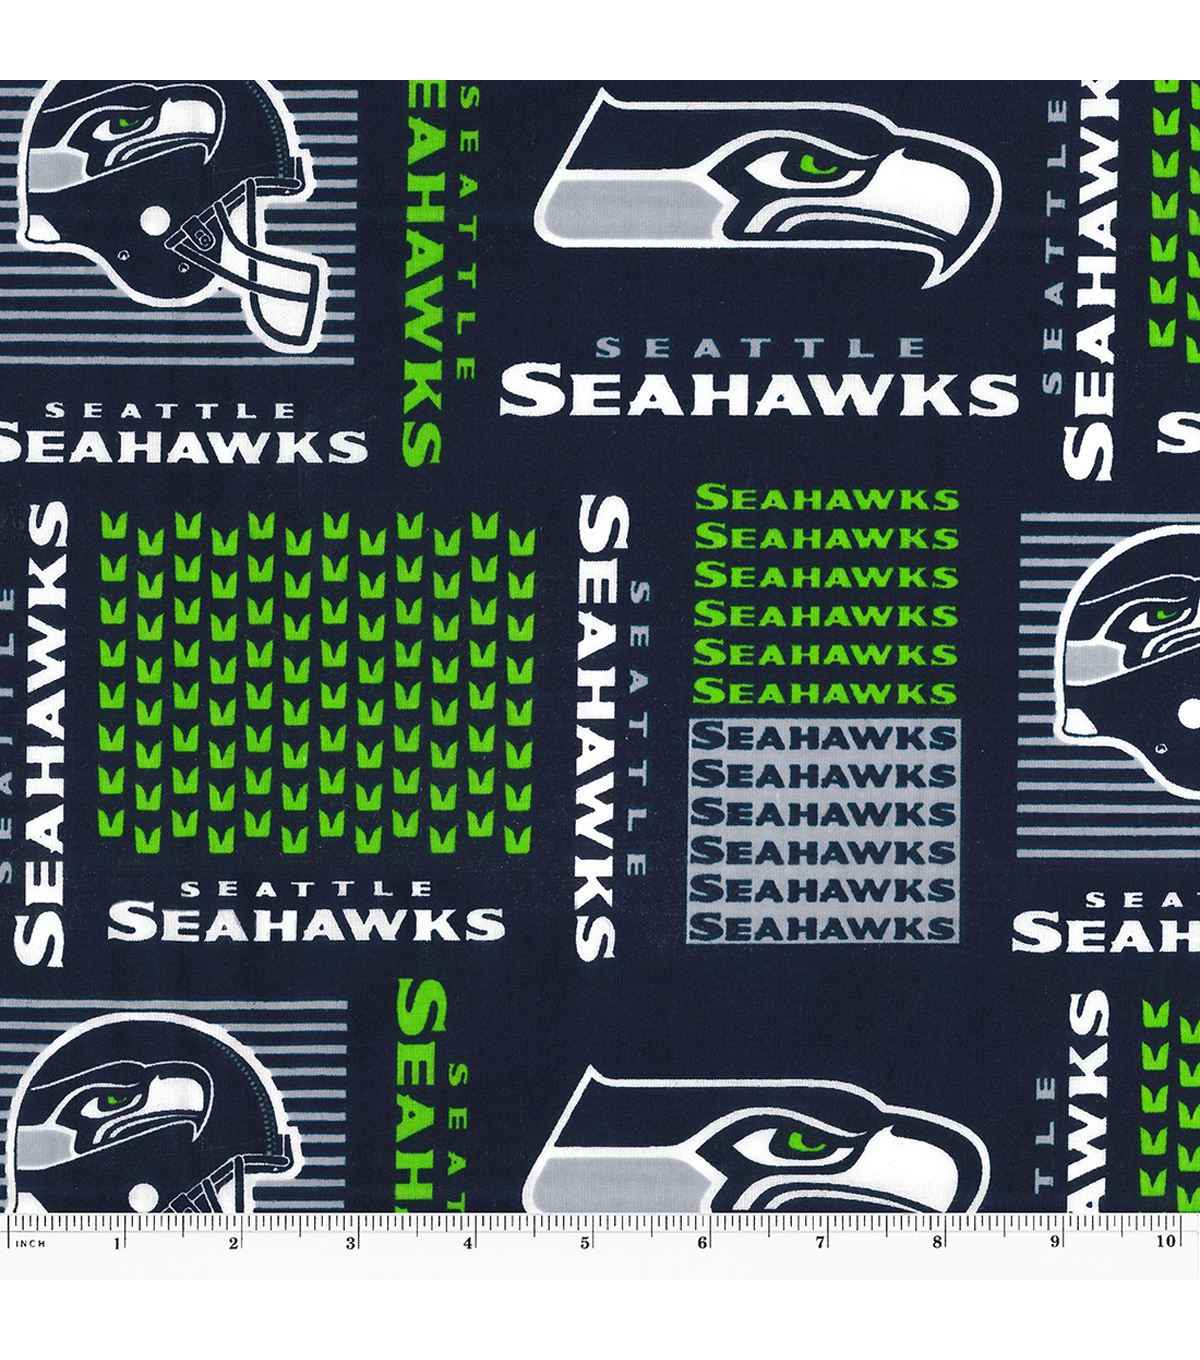 Seattle Seahawks Cotton Fabric -Patch